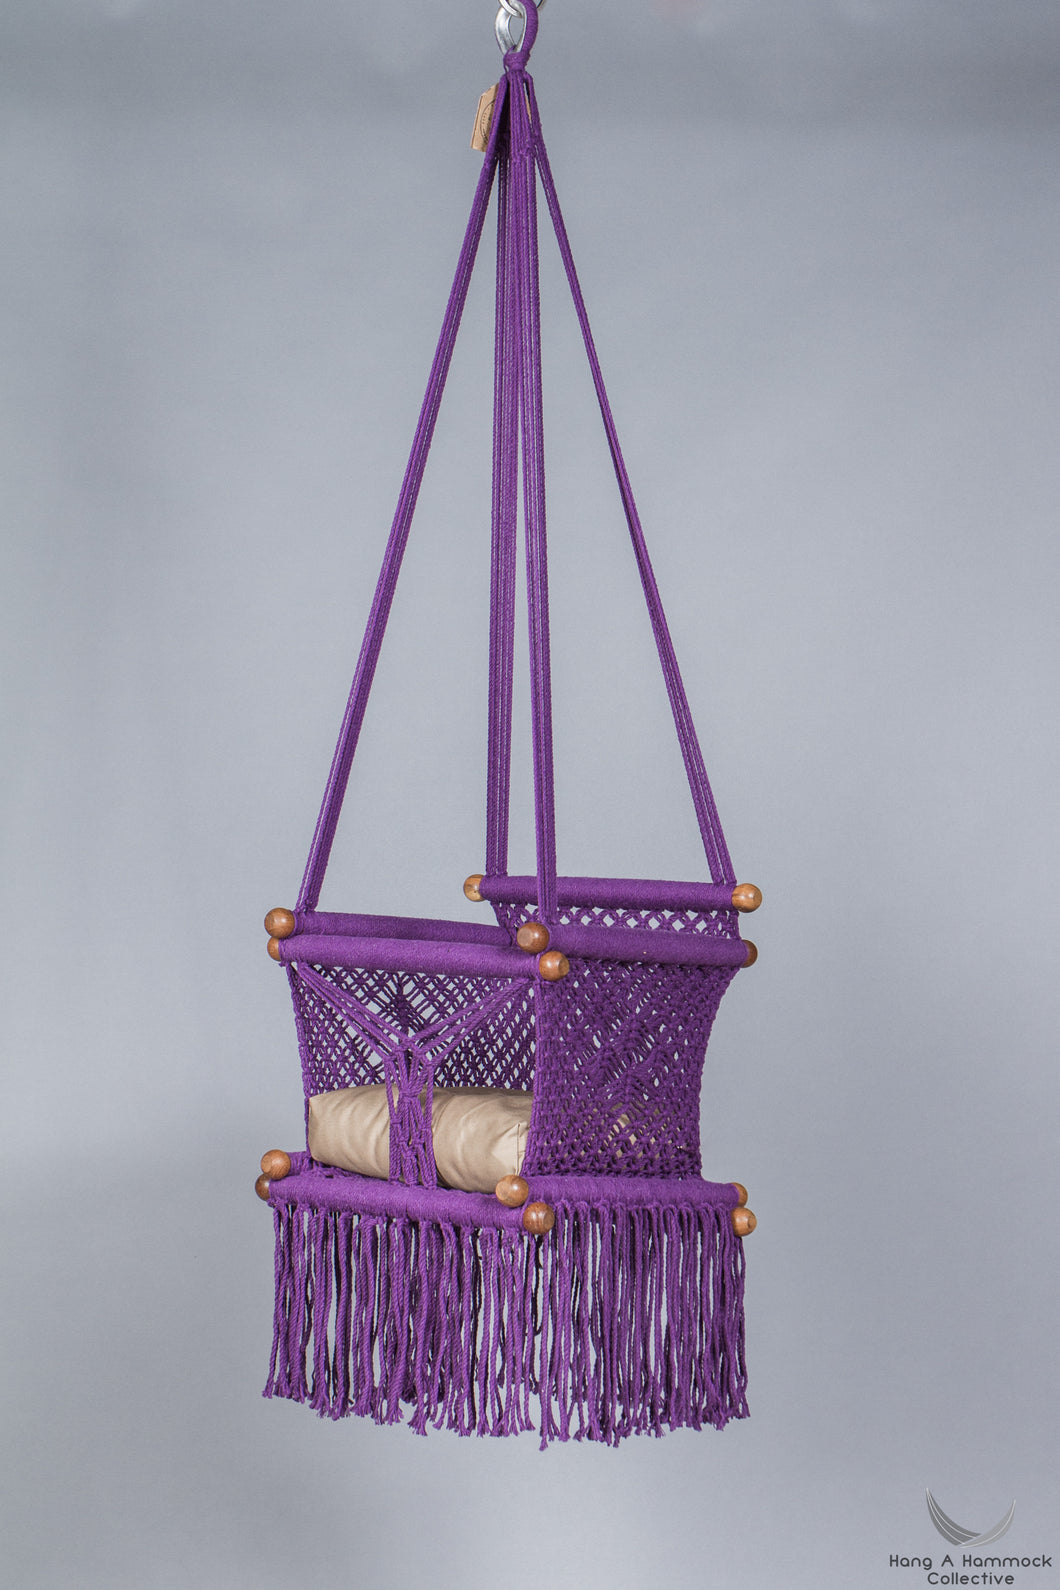 Bon [hammocks And Baby Hanging Chairs In Macrame]   Hangahammockcollective